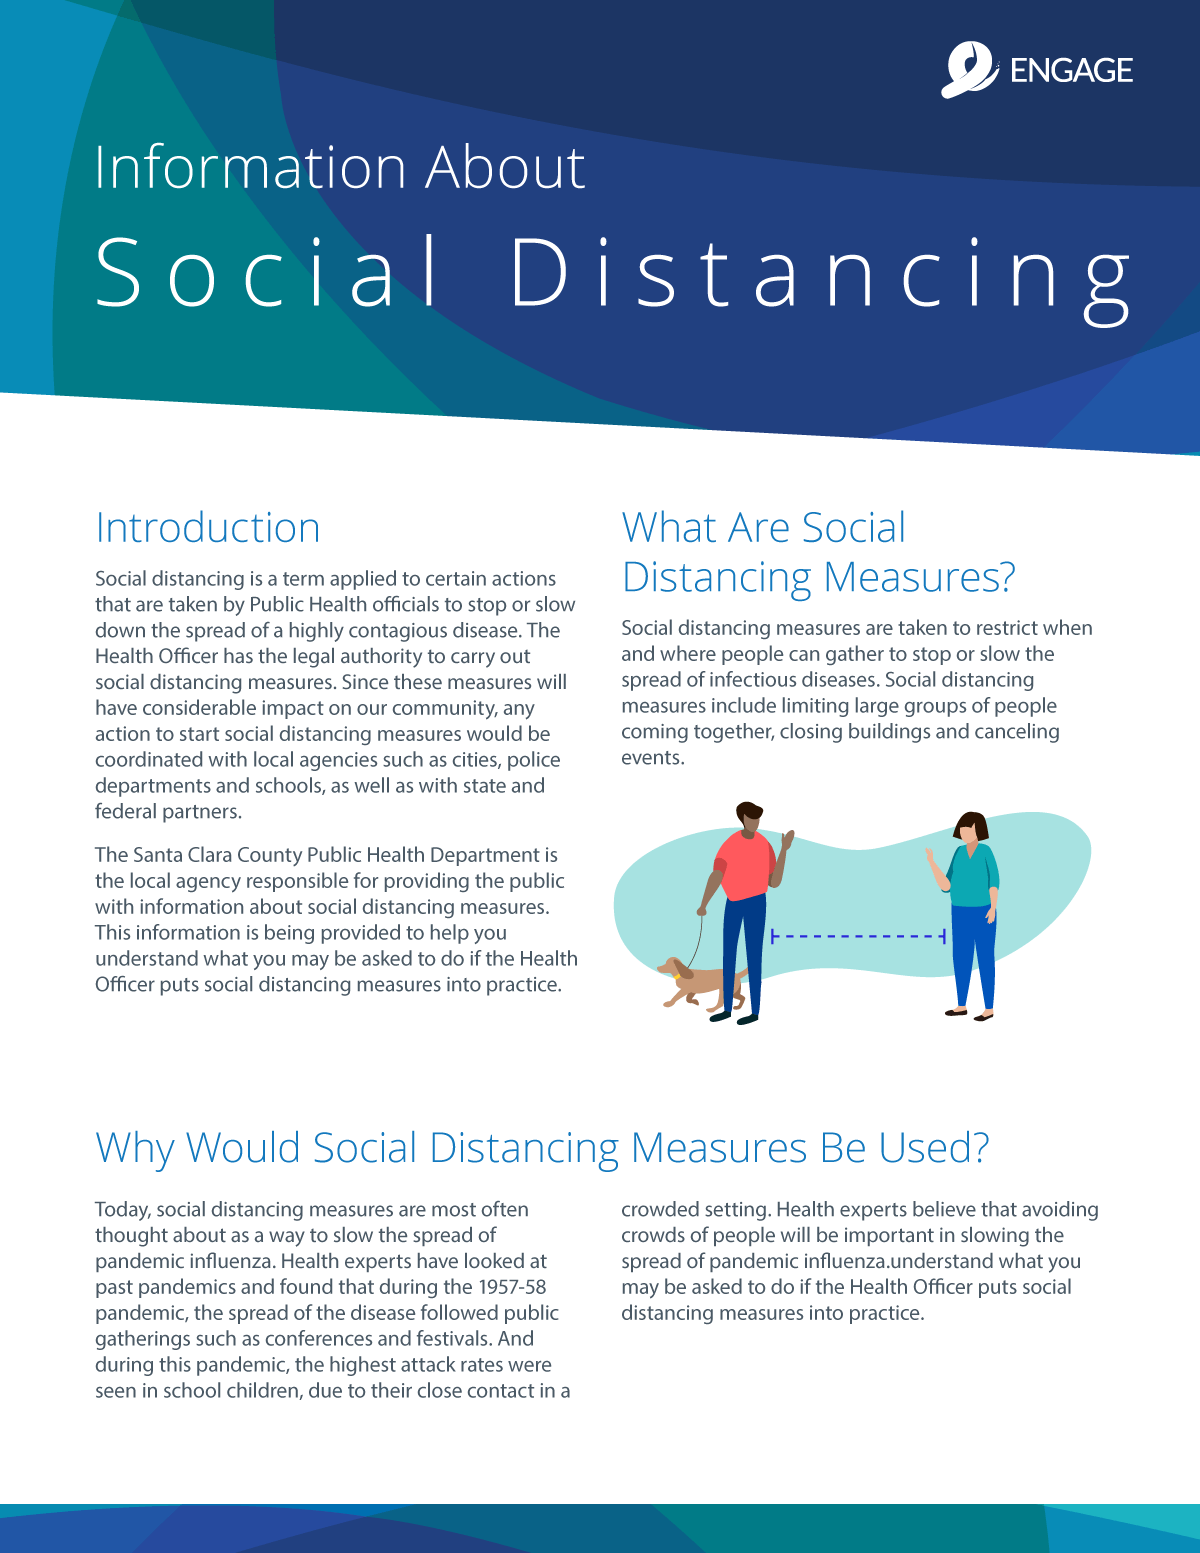 COVID-19-Social-Distancing-101-Flyer_Engage